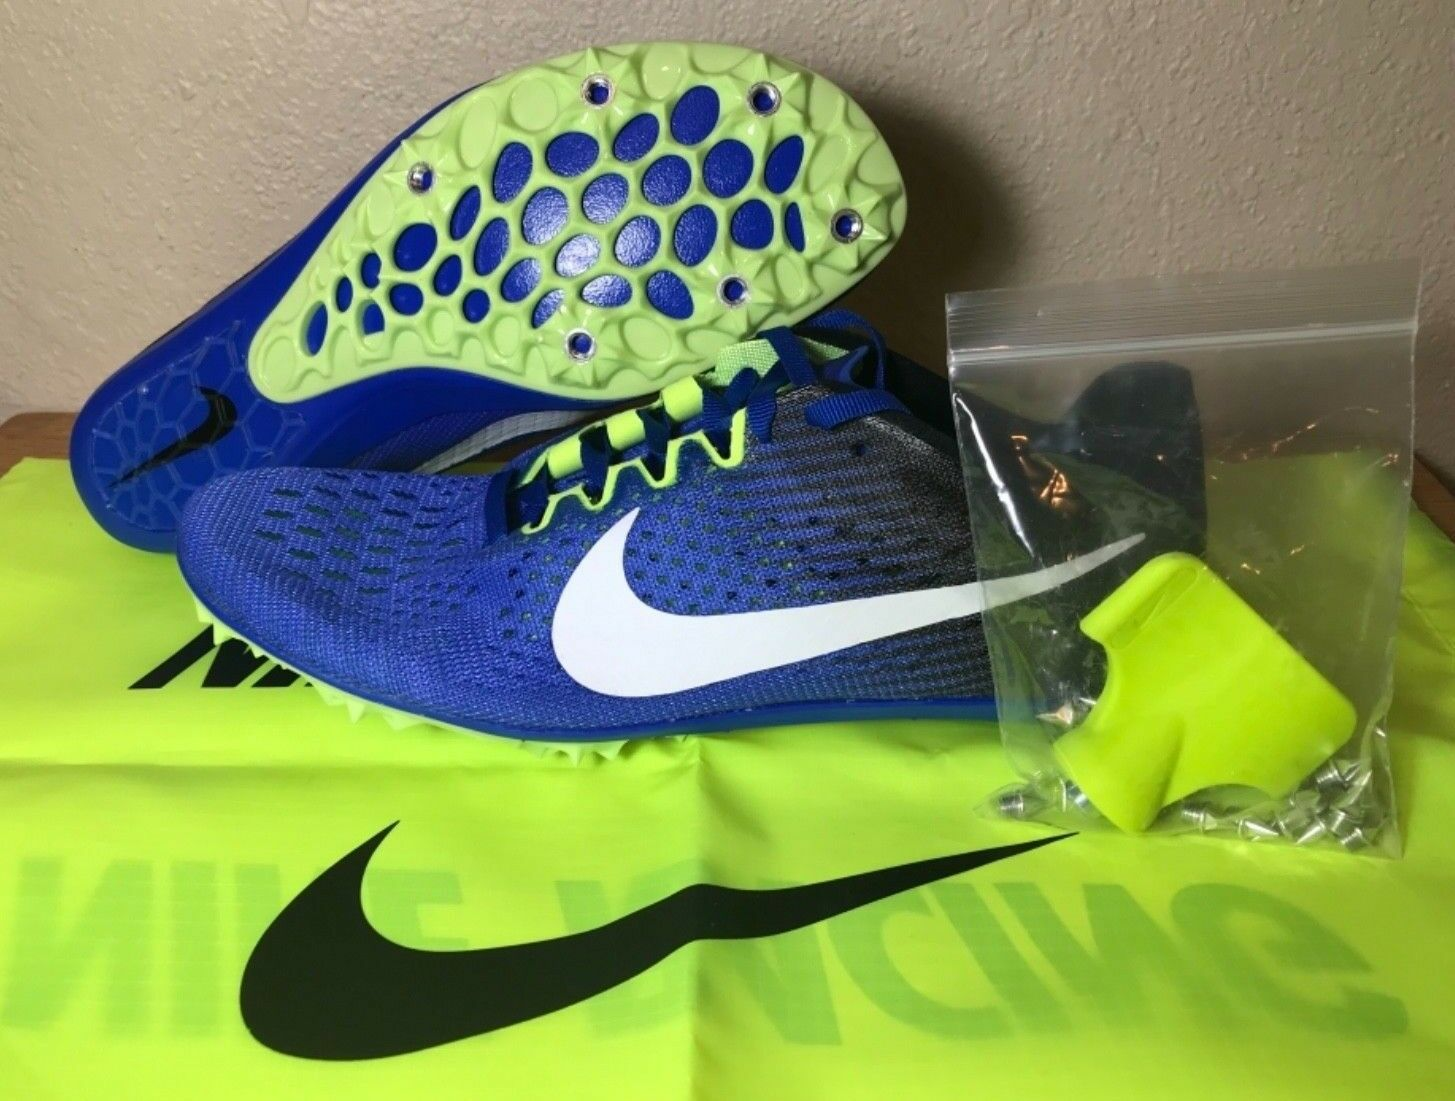 Nike Zoom Victory 3 Track Track Track Racing Spikes SZ bluee Black Volt Mens New (835997-413) 7a31bd